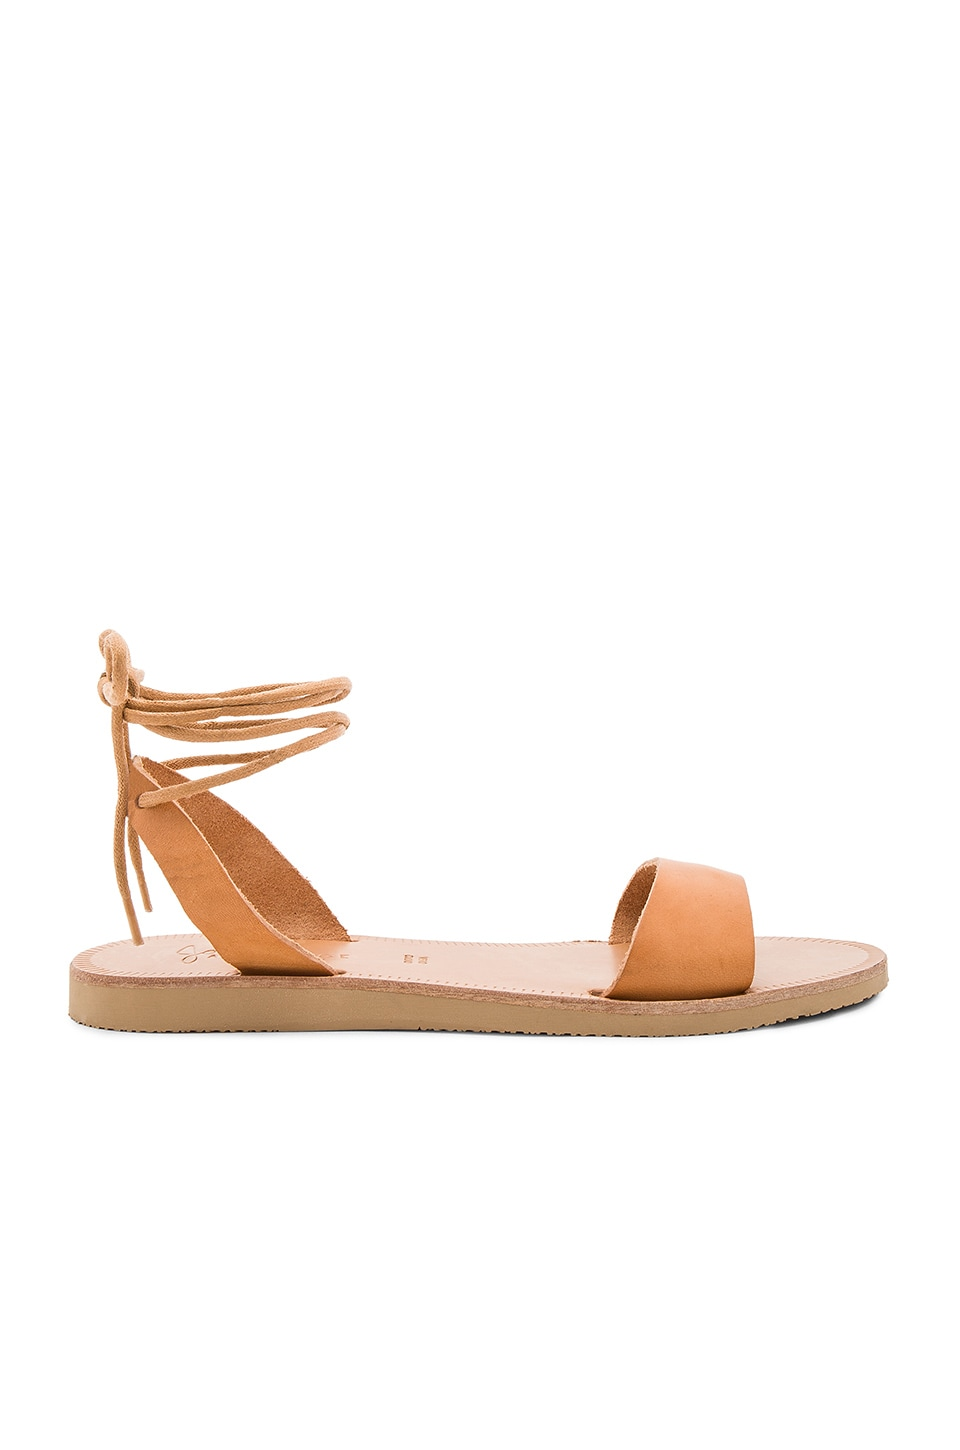 Joie Pietra Sandal in Natural